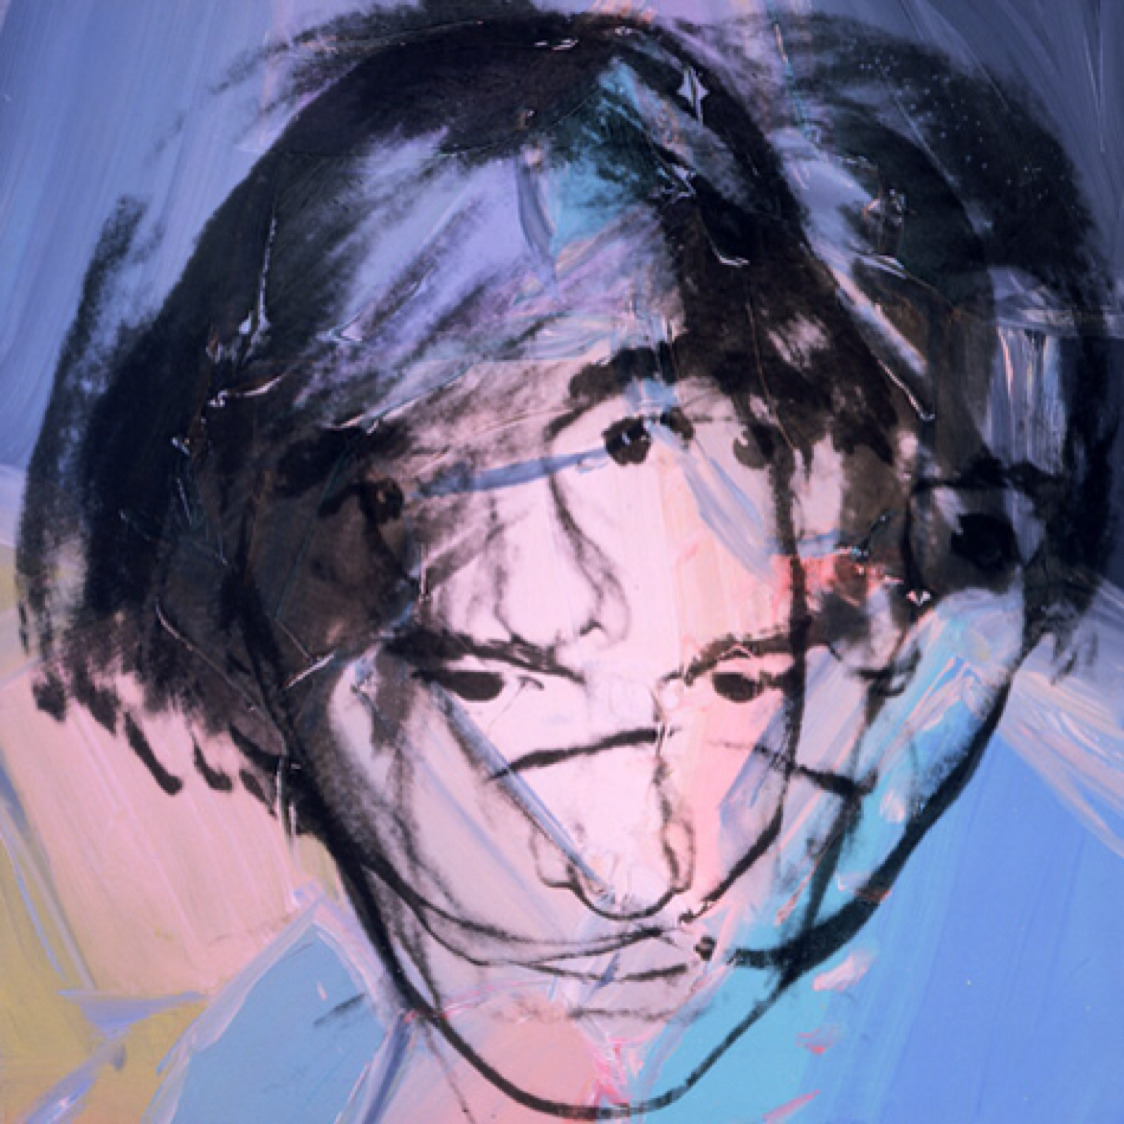 Last Picture Show Andy Warhol Self Portrait 1978